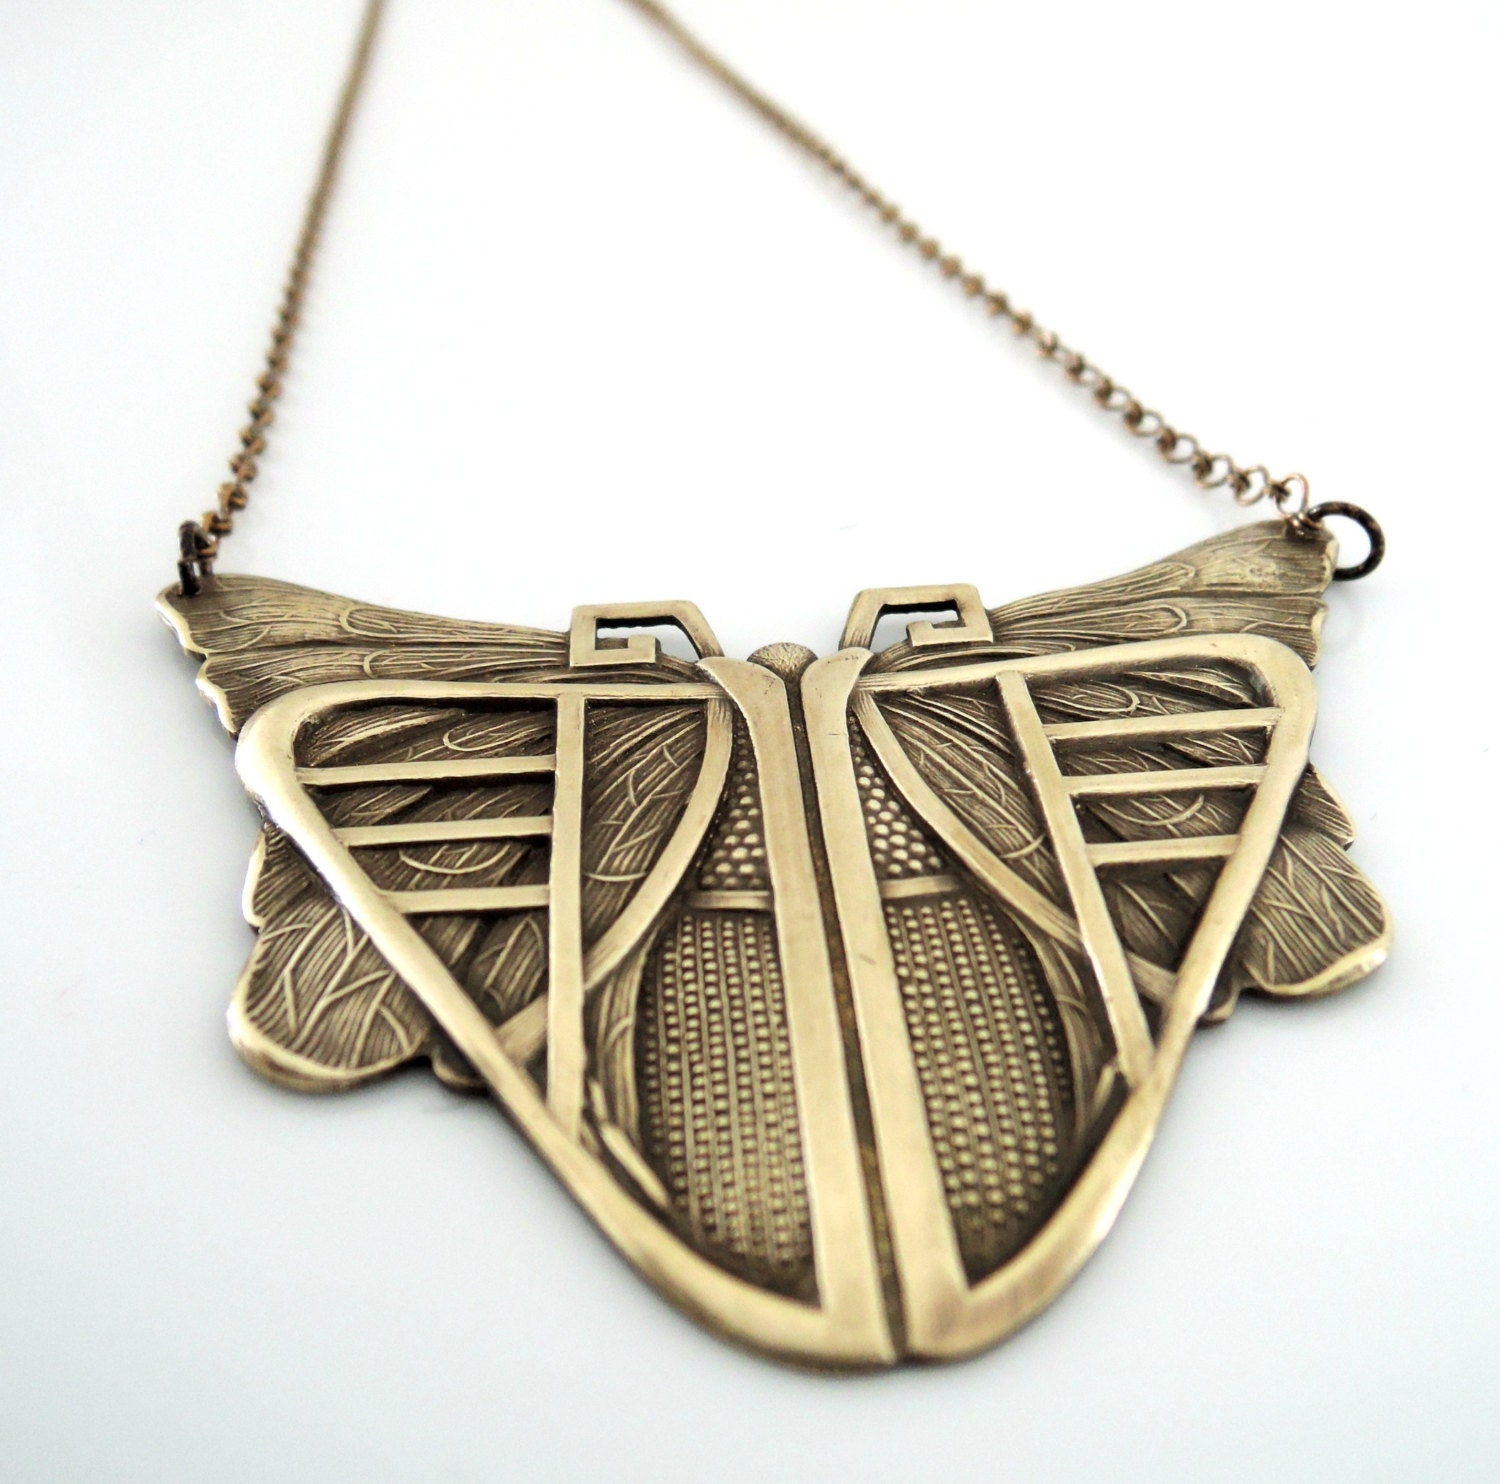 Vintage Necklace Art Deco Jewelry Butterfly Necklace